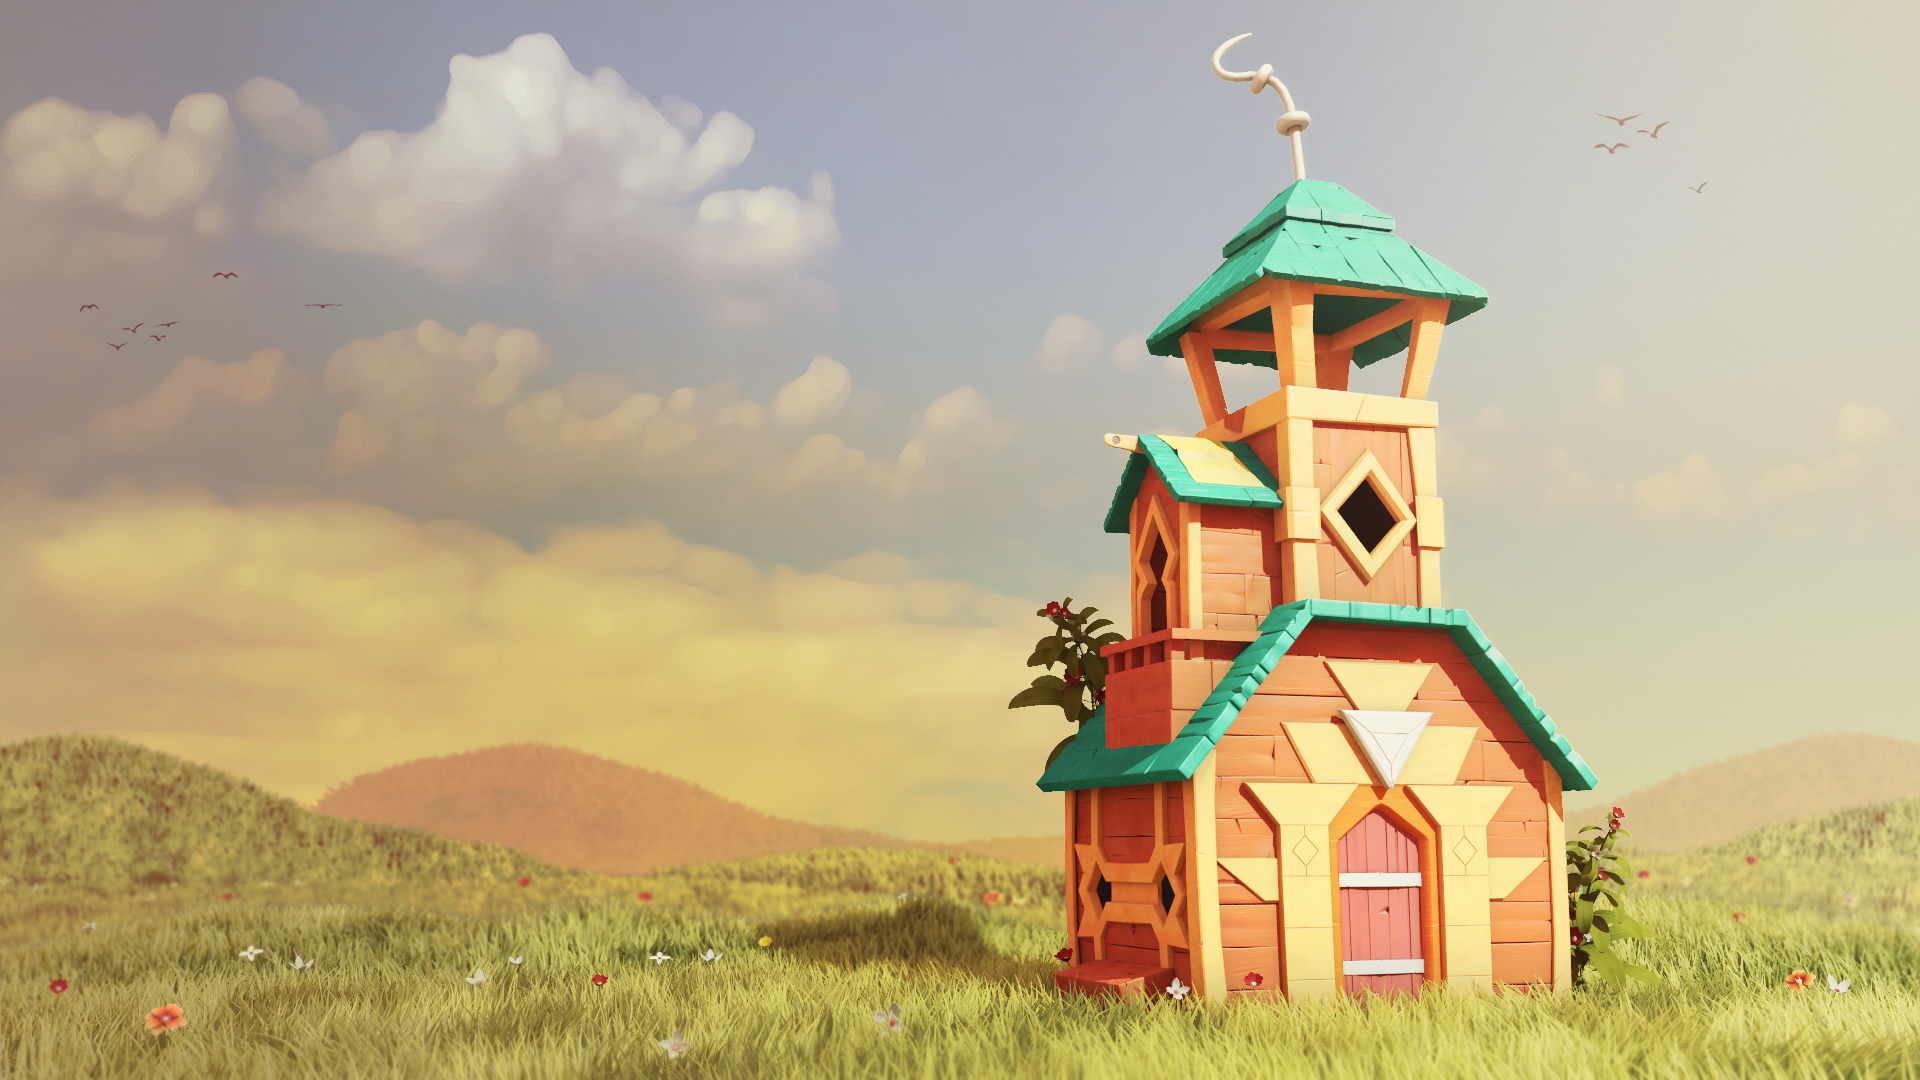 3ds Max: Stylized Environment for Animation